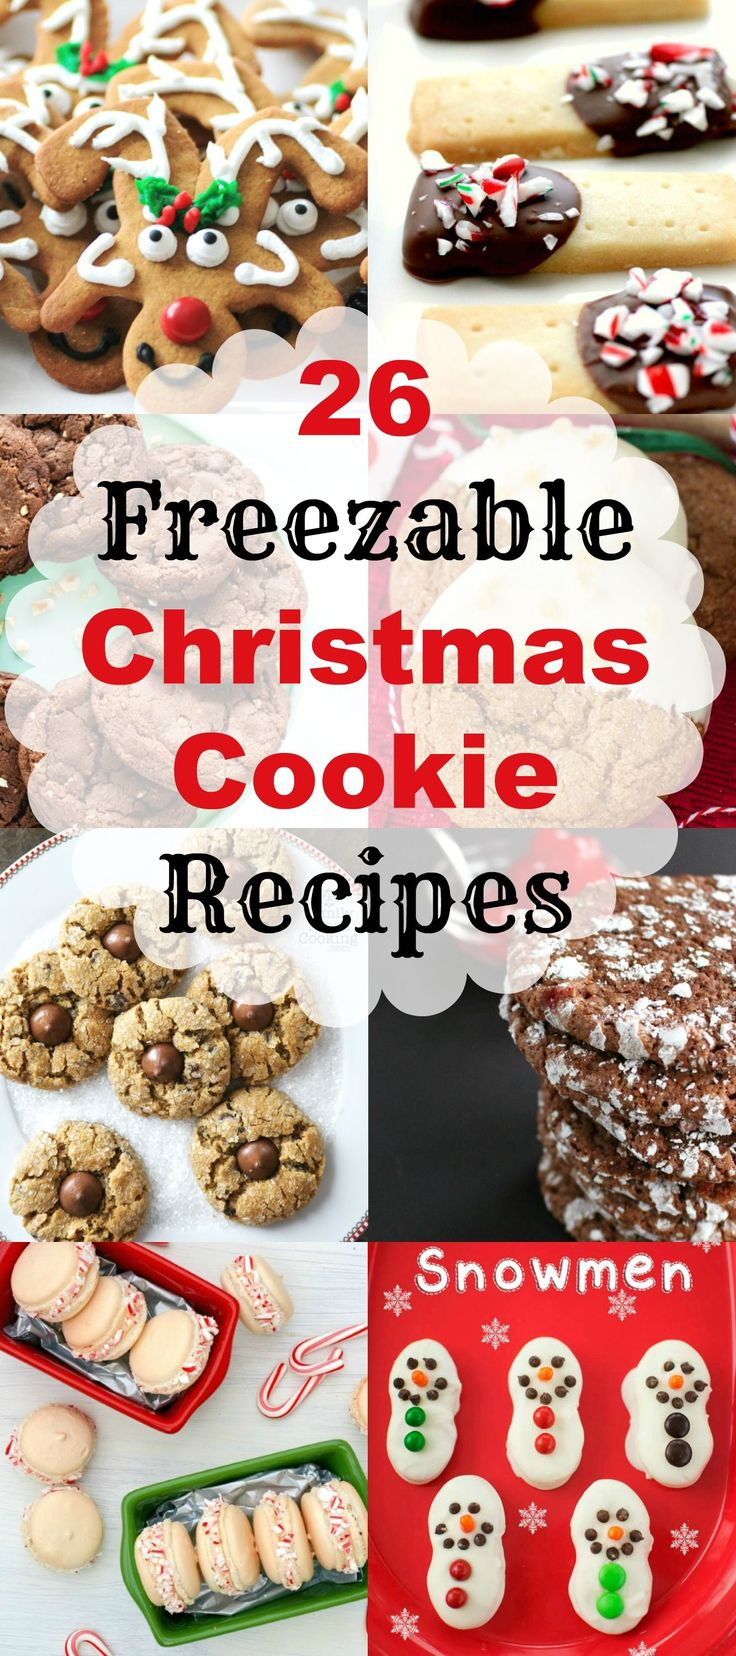 When it is time to serve or make up gifts I have a huge variety to choose from and so will you now with 26 Freezable Christmas Cookie Recipes.